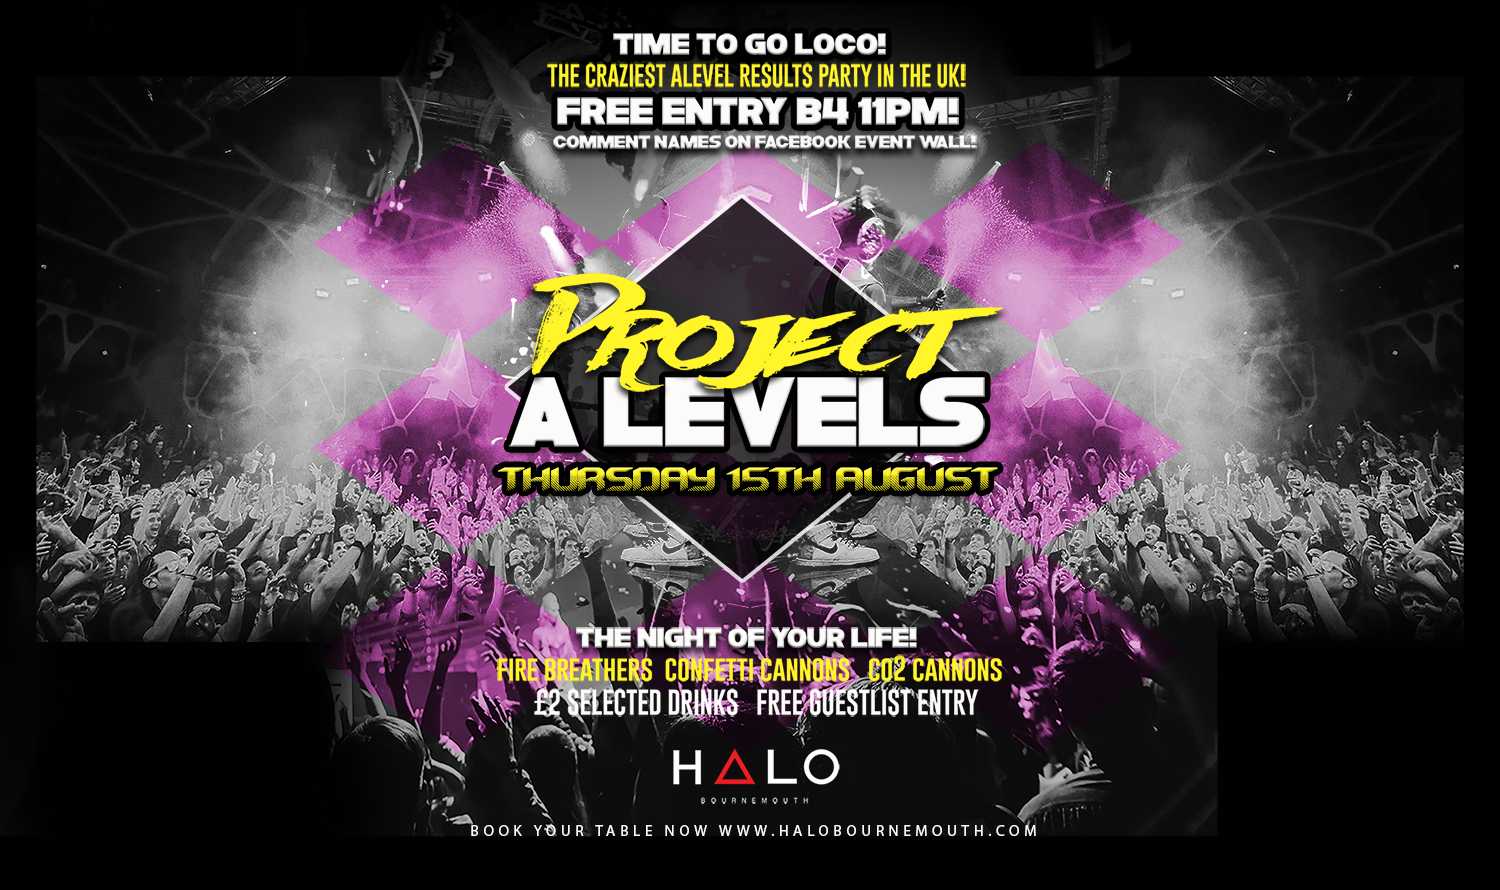 Project A-Levels  15.08.19 Halo Bournemouth